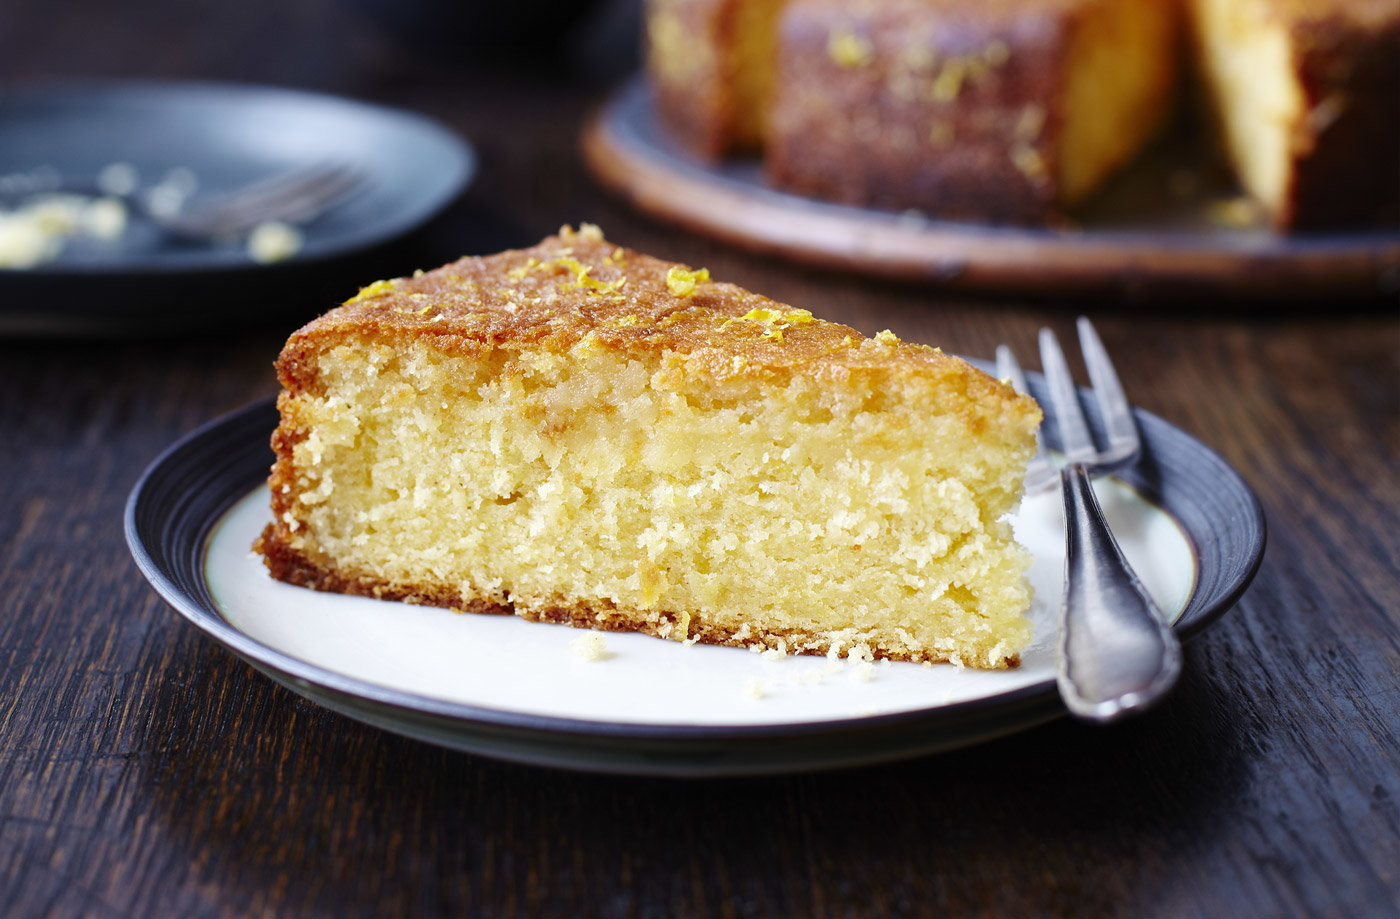 Lemon Cardamom Cake Recipe